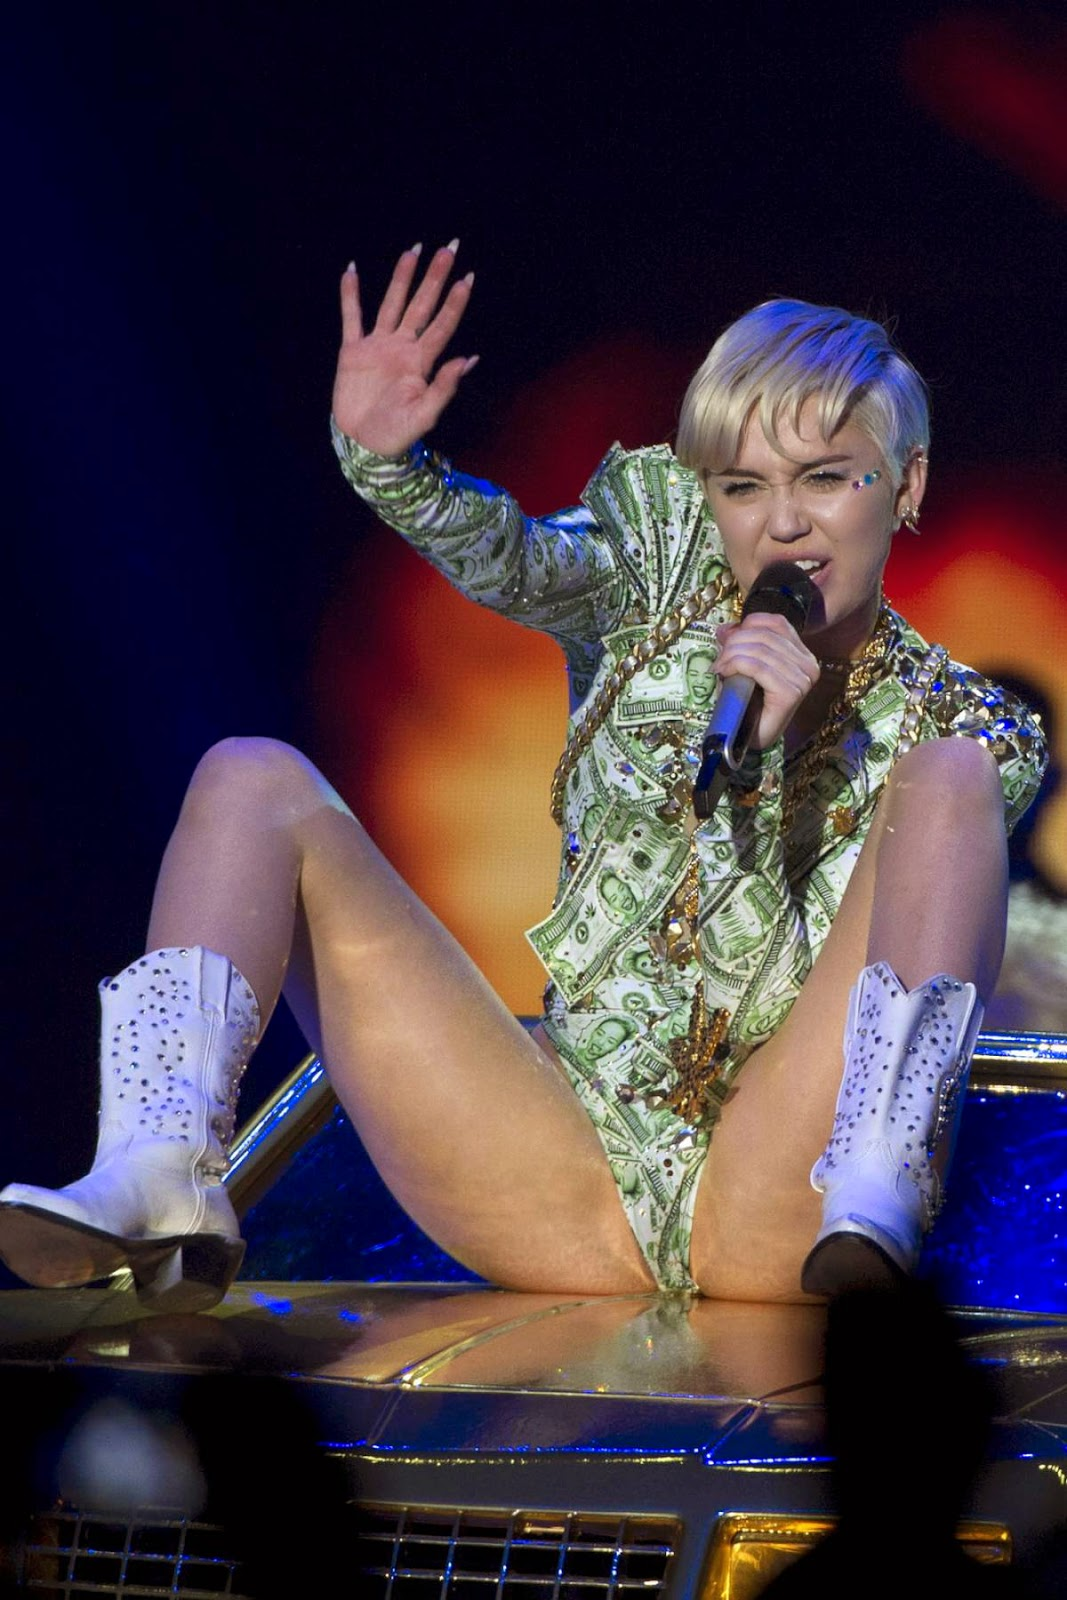 Scandal! Miley cyrus upskirt concert logically